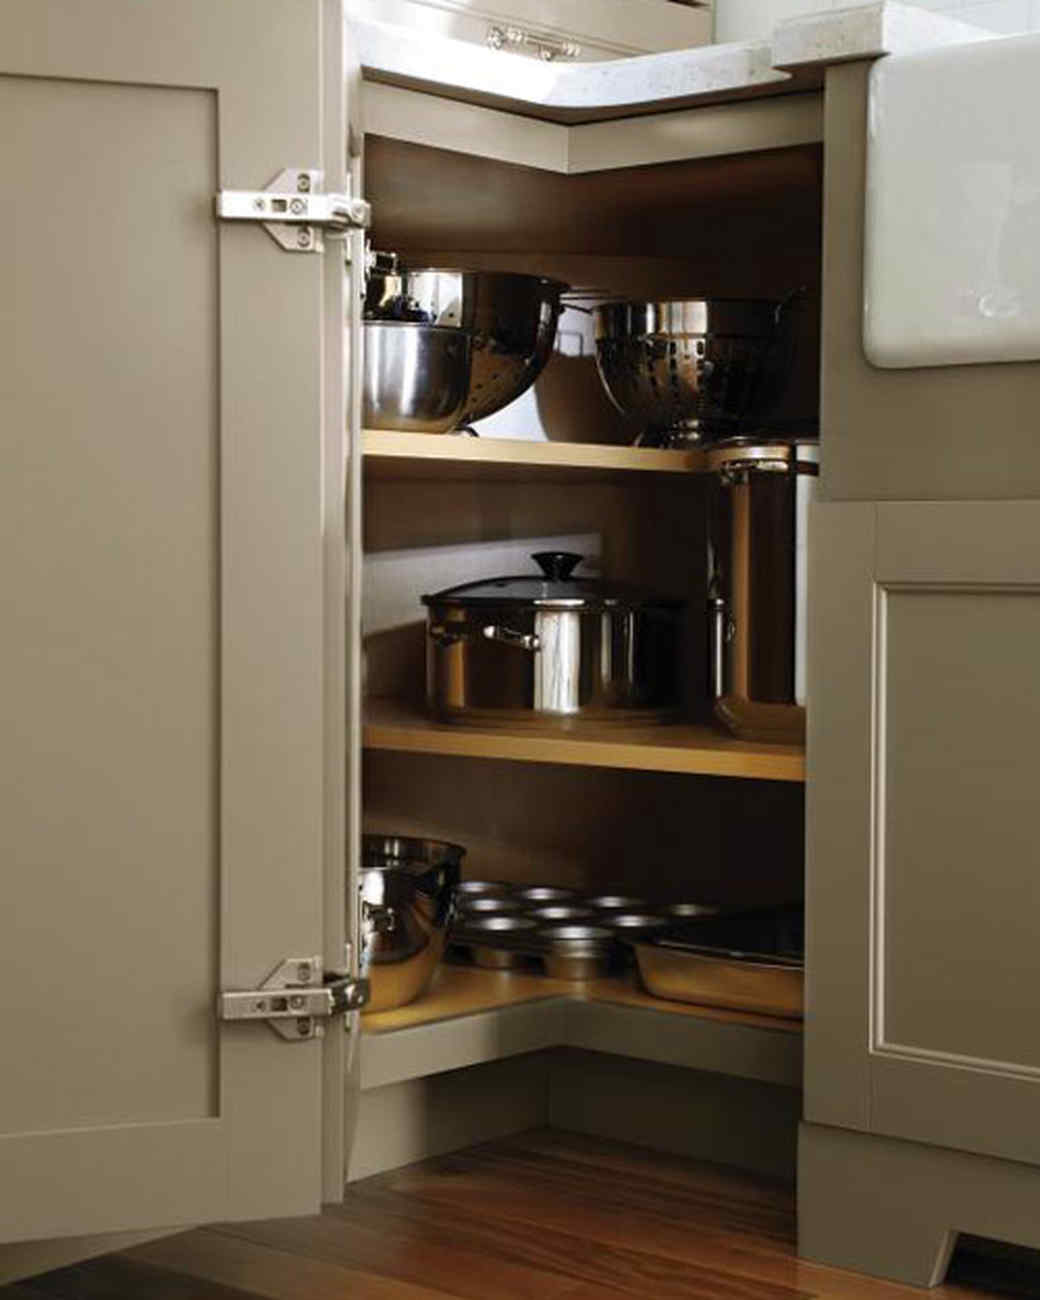 Solutions For Kitchen Cabinets Whats Needed